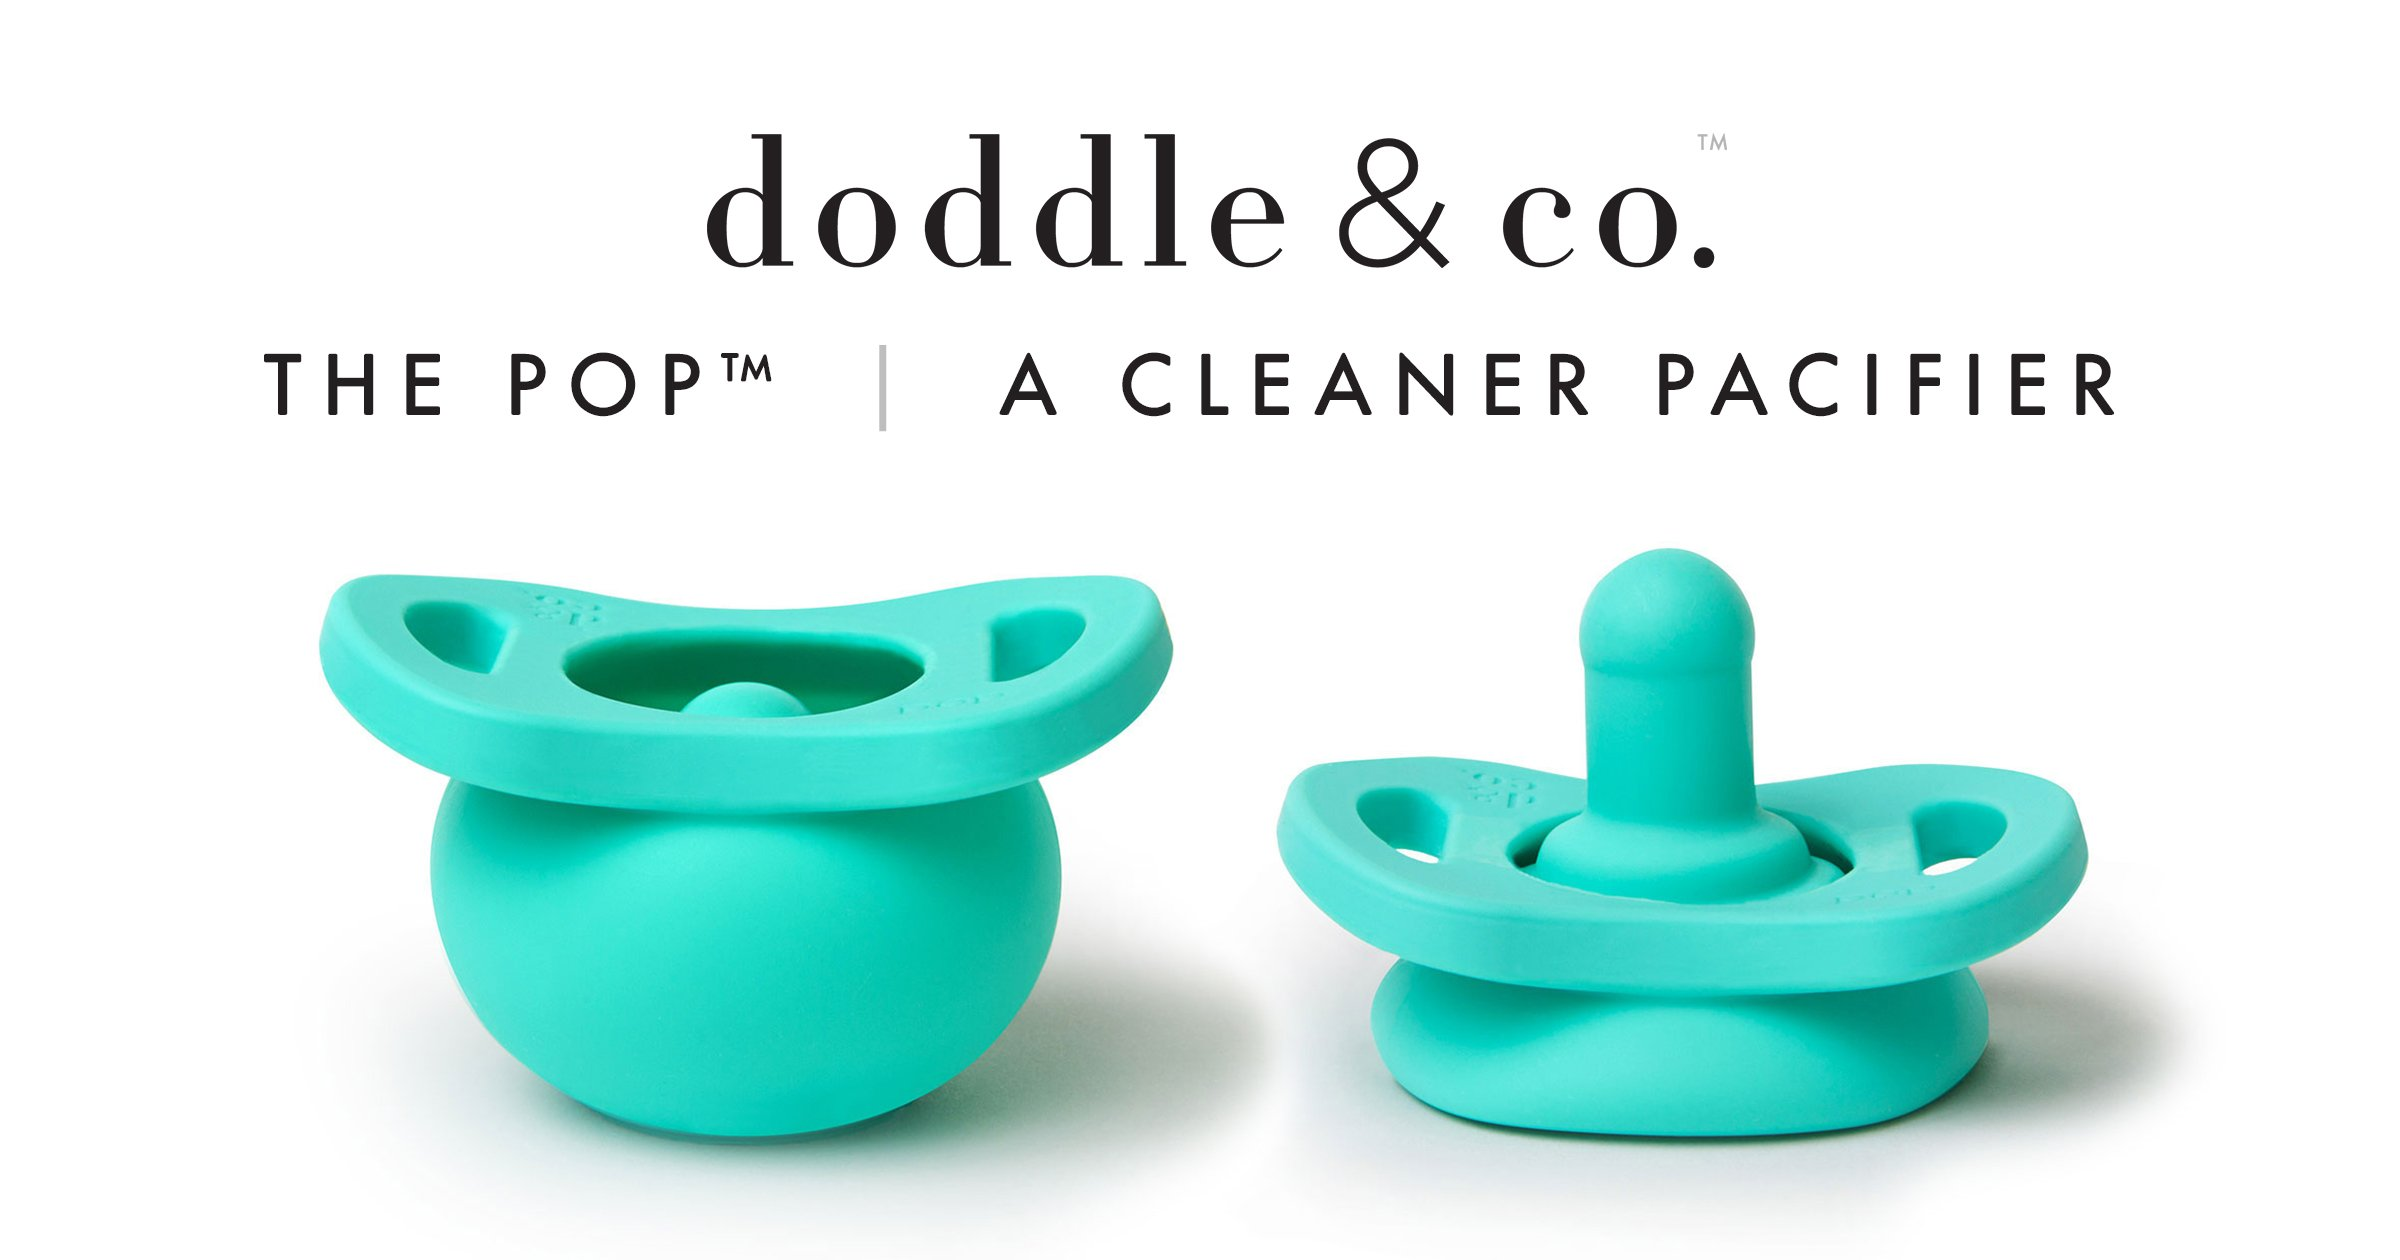 Doddle & Co Pop Pacifier - the cleaner pacifier